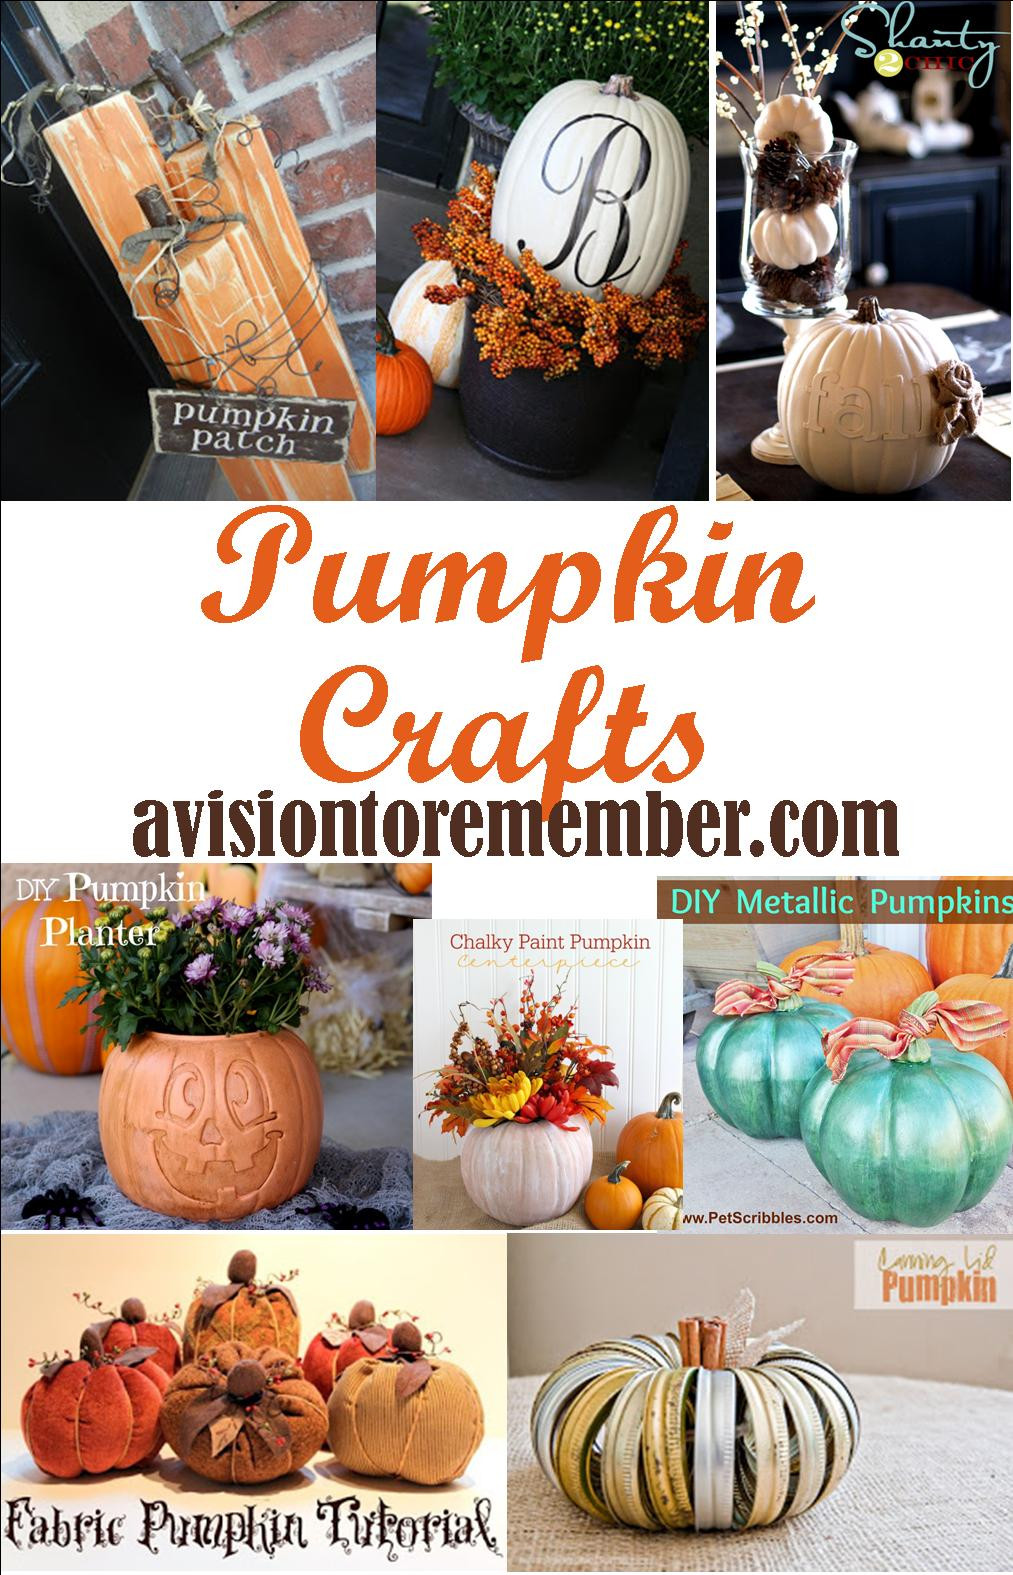 Best ideas about Pumpkin Craft Ideas . Save or Pin Easy and Fun Pumpkin Crafts Ideas Now.